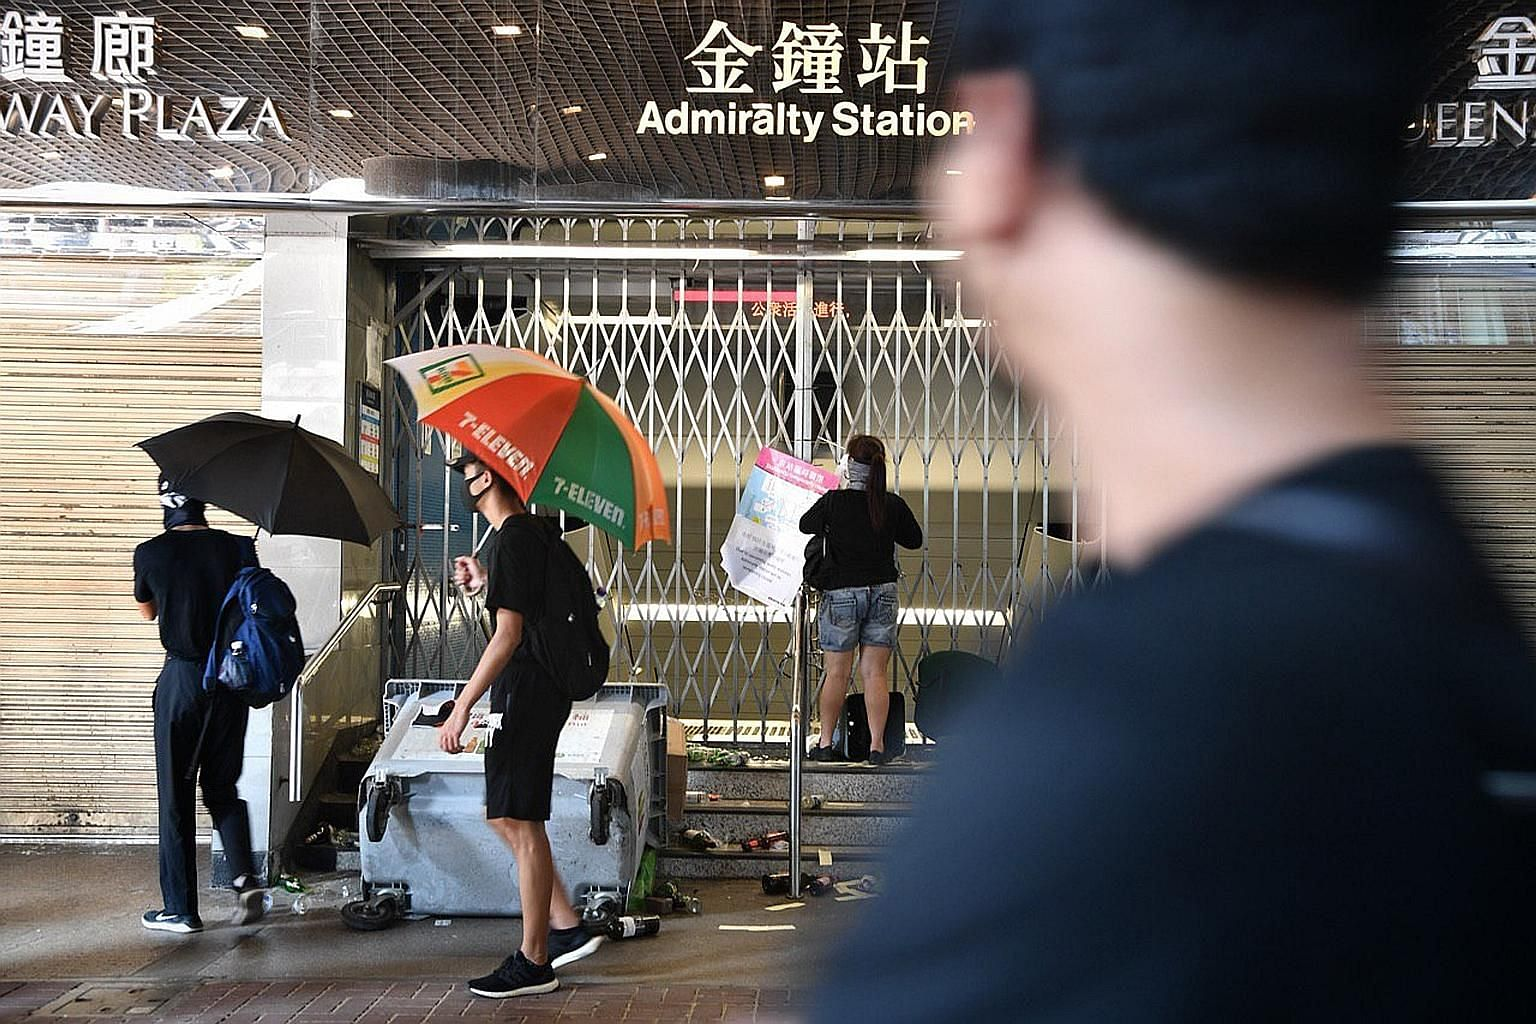 Above: Mr Mak Pui Tung says he is saddened that the protests have caused a divide between metro staff and commuters. Right: A protester securing the gates at Admiralty station with cable ties on Tuesday. The metro operator has been targeted by protes